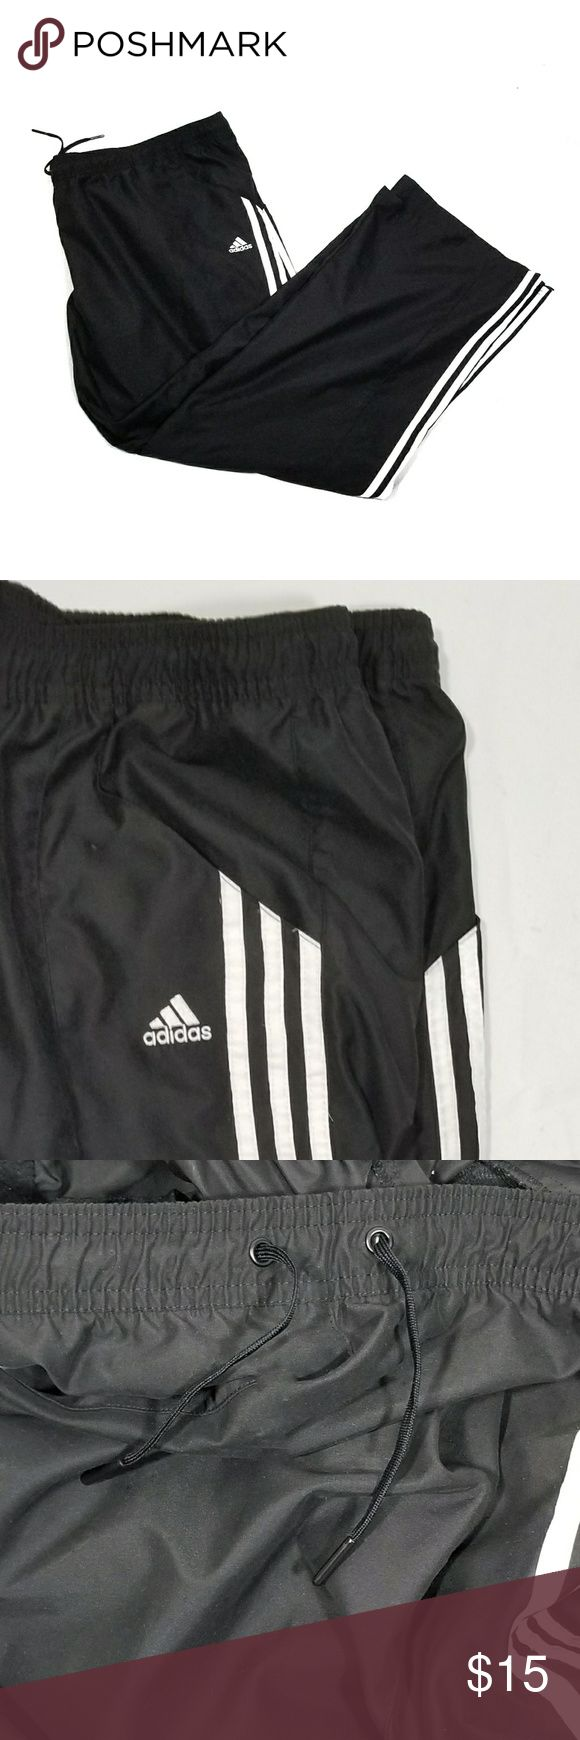 Mens Adidas Black & White Athletic Pants- Size 2XL Mens Adidas black athletic pants. Has white stripes on the sides,  pockets, zip up adjustable bottoms and tie waistband.  Size 2XL adidas Pants